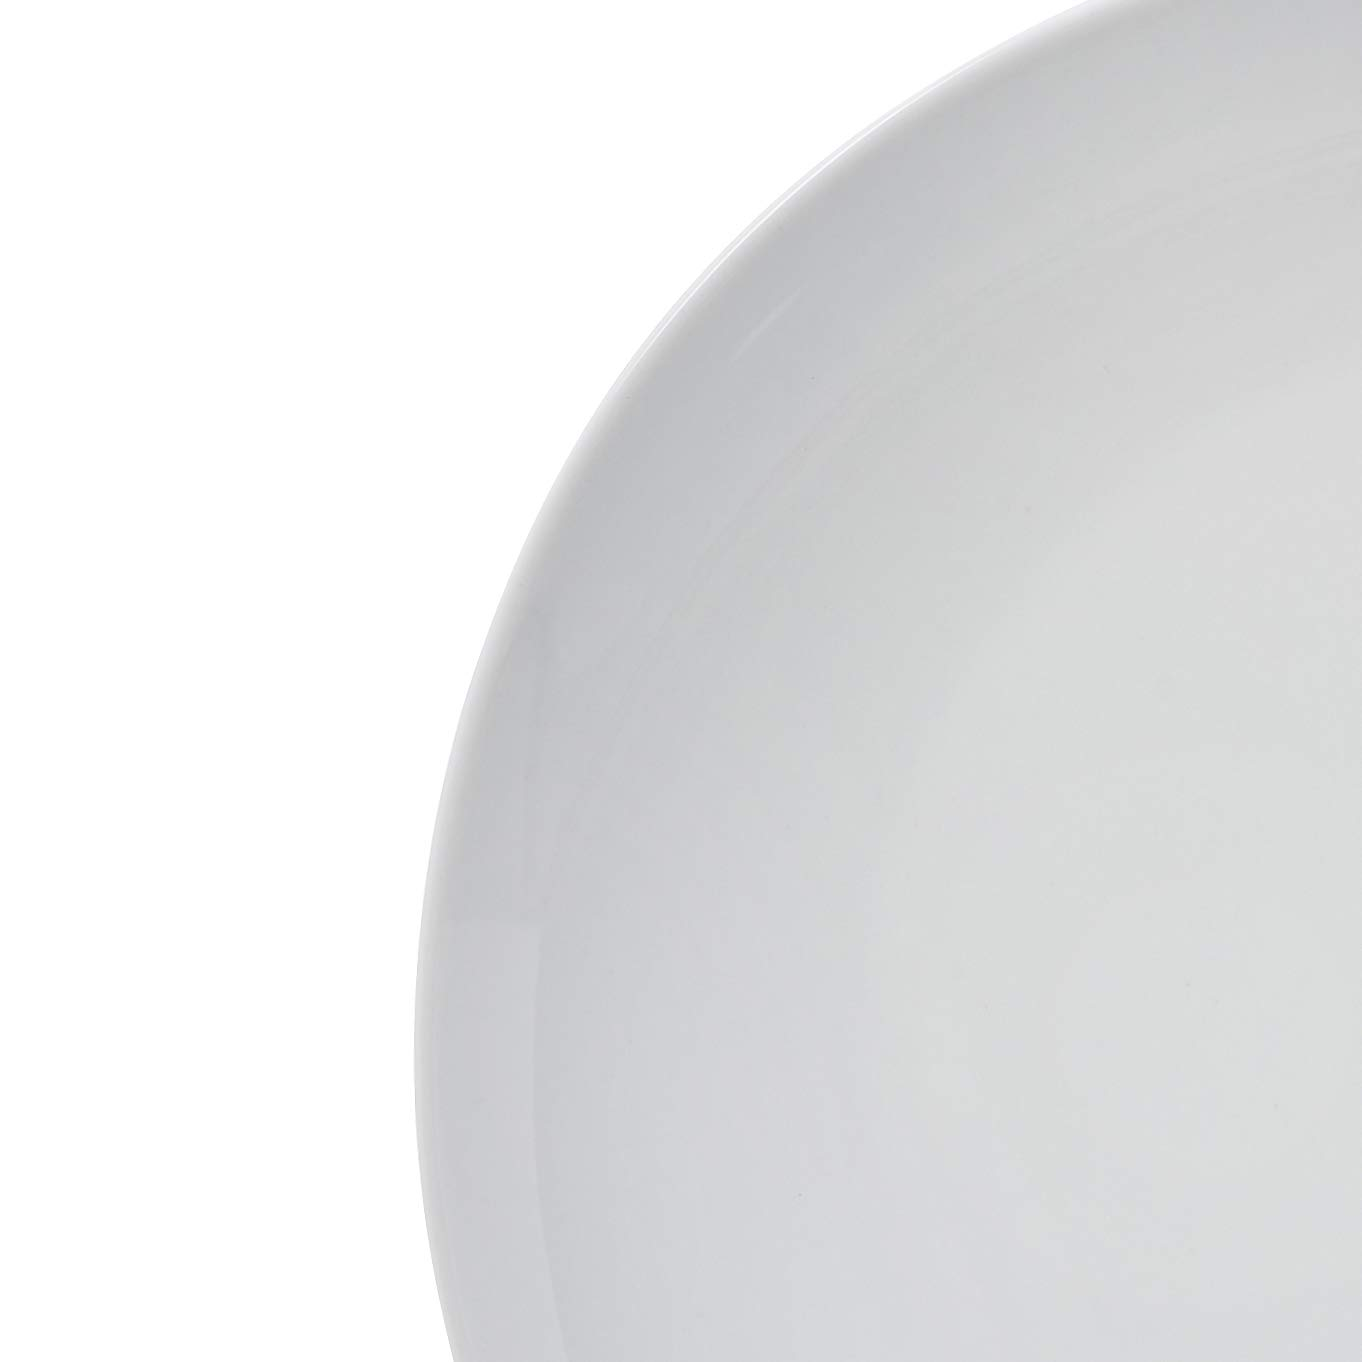 AmazonBasics 18-Piece Kitchen Dinnerware Set, Dishes, Bowls, Service for 6, White Porcelain Coupe by AmazonBasics (Image #2)